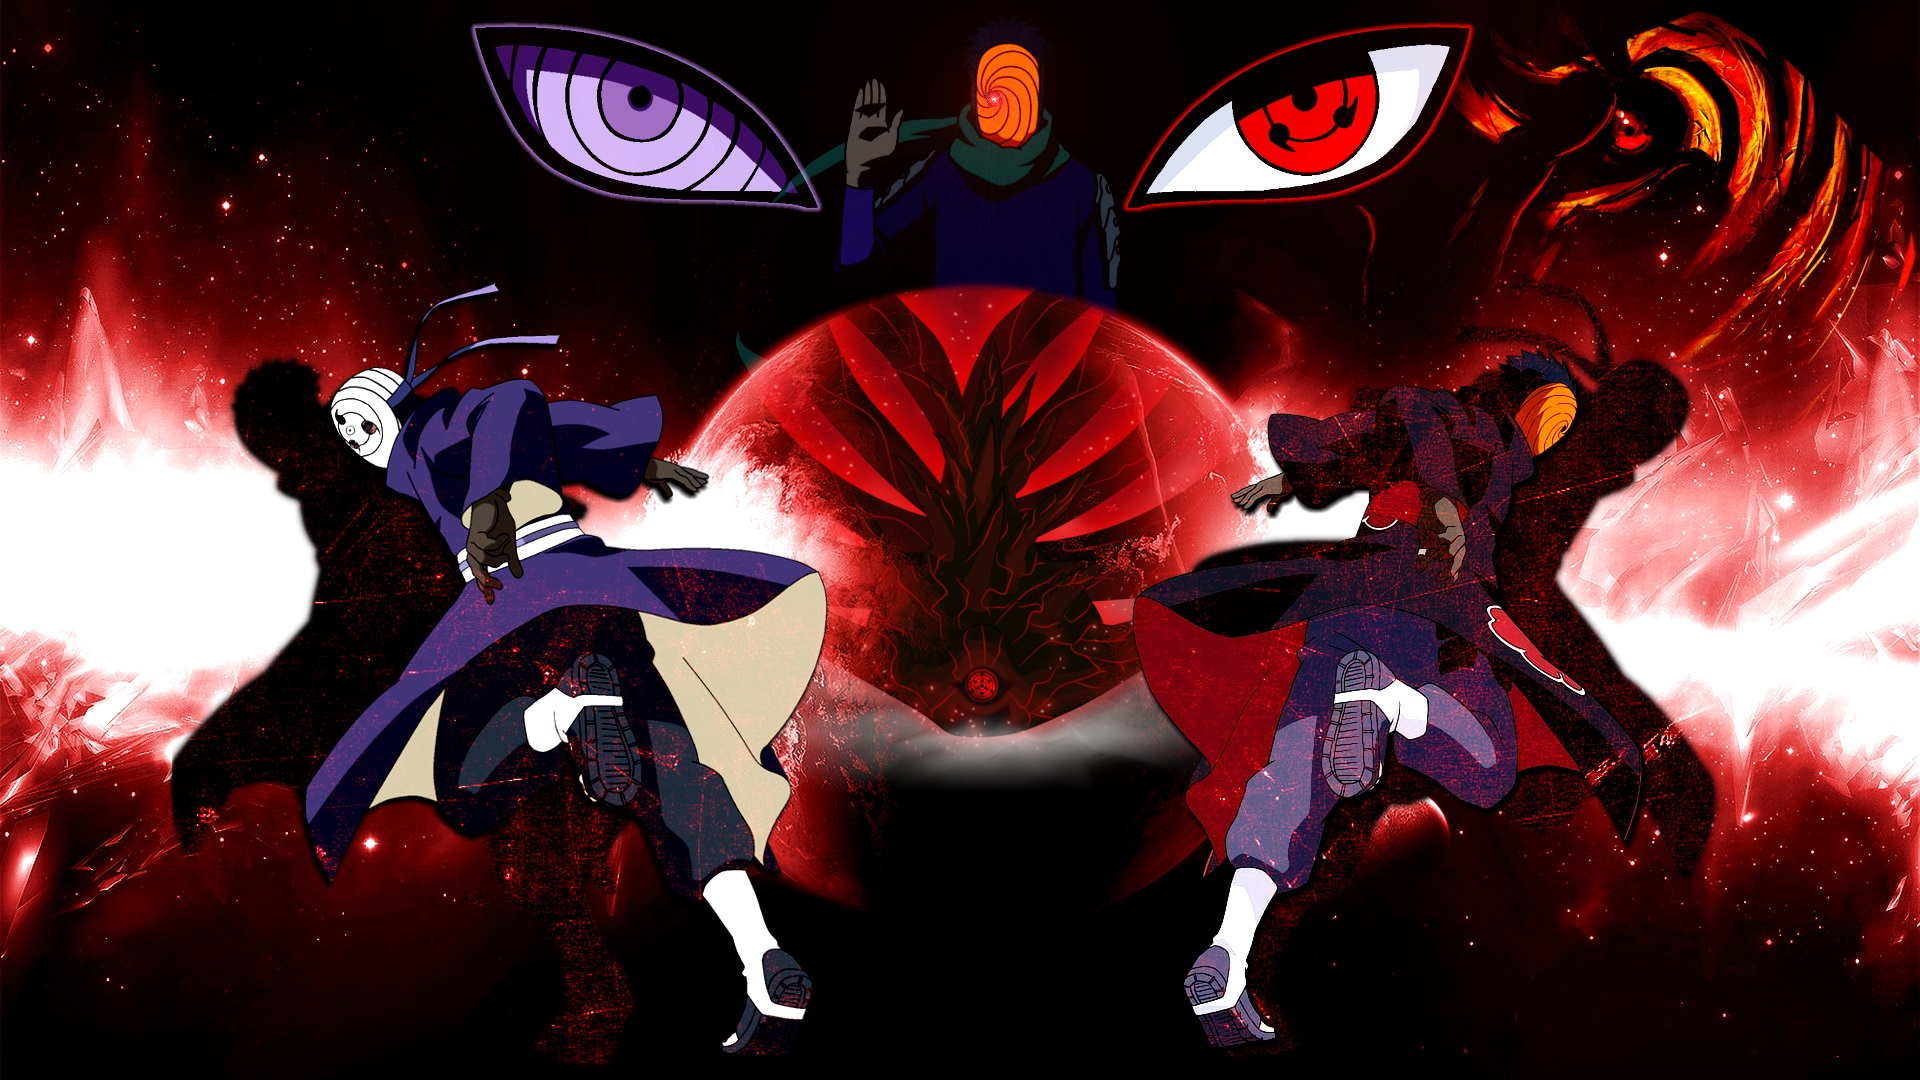 Uchiha Wallpaper HD 1920x1080